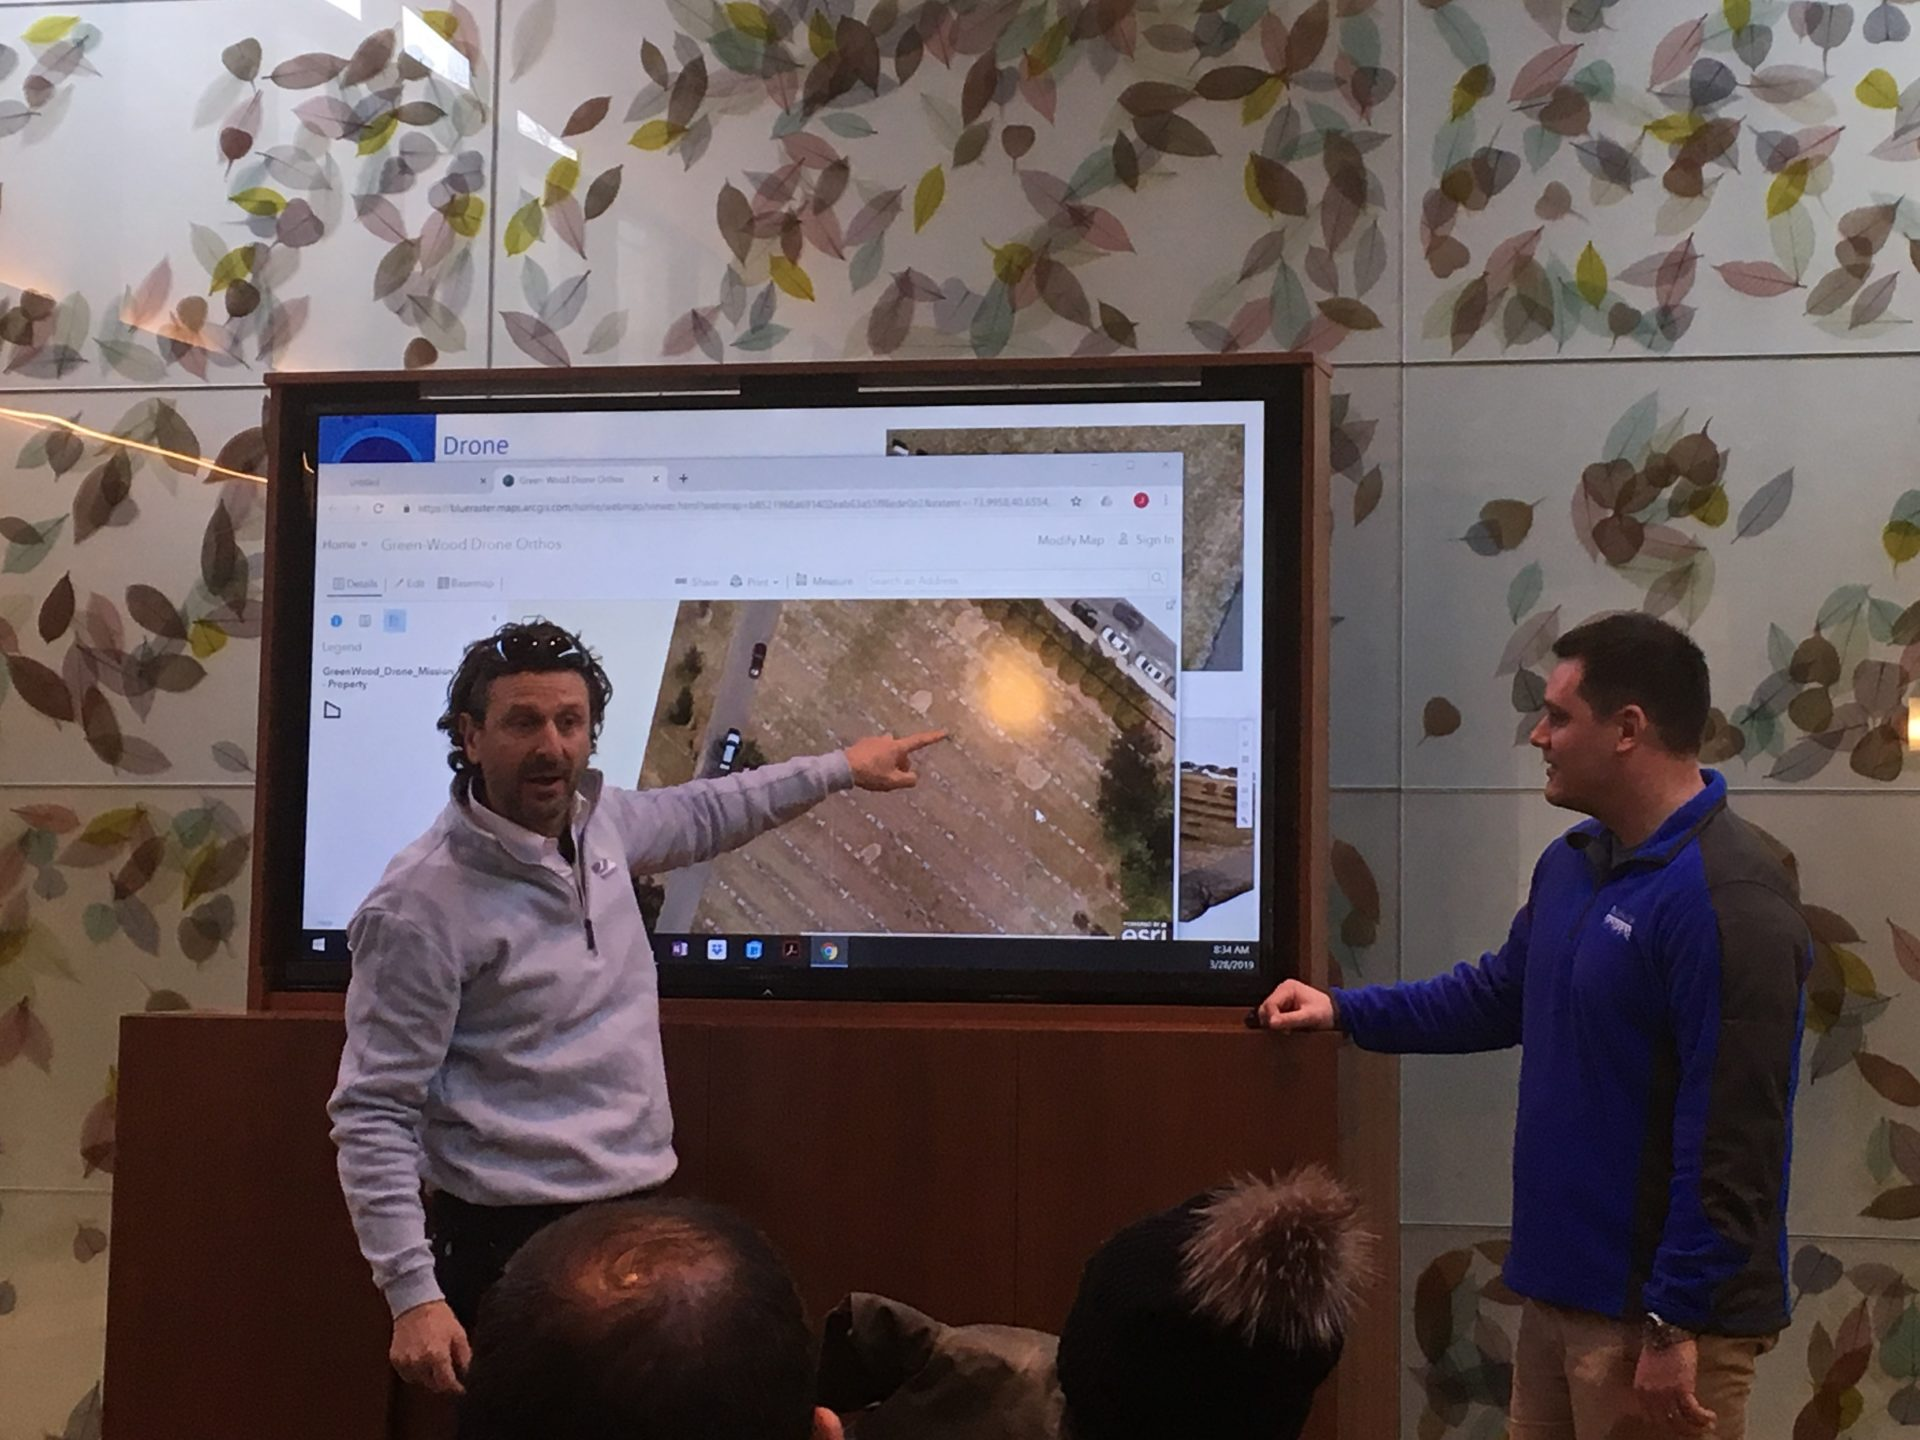 """Turf Guy"" Dr. Frank Rossi of the School of Integrative Plant Science at Cornell University and Christopher Gabris from Blue Raster looking at high resolution drone imagery captured the day before"